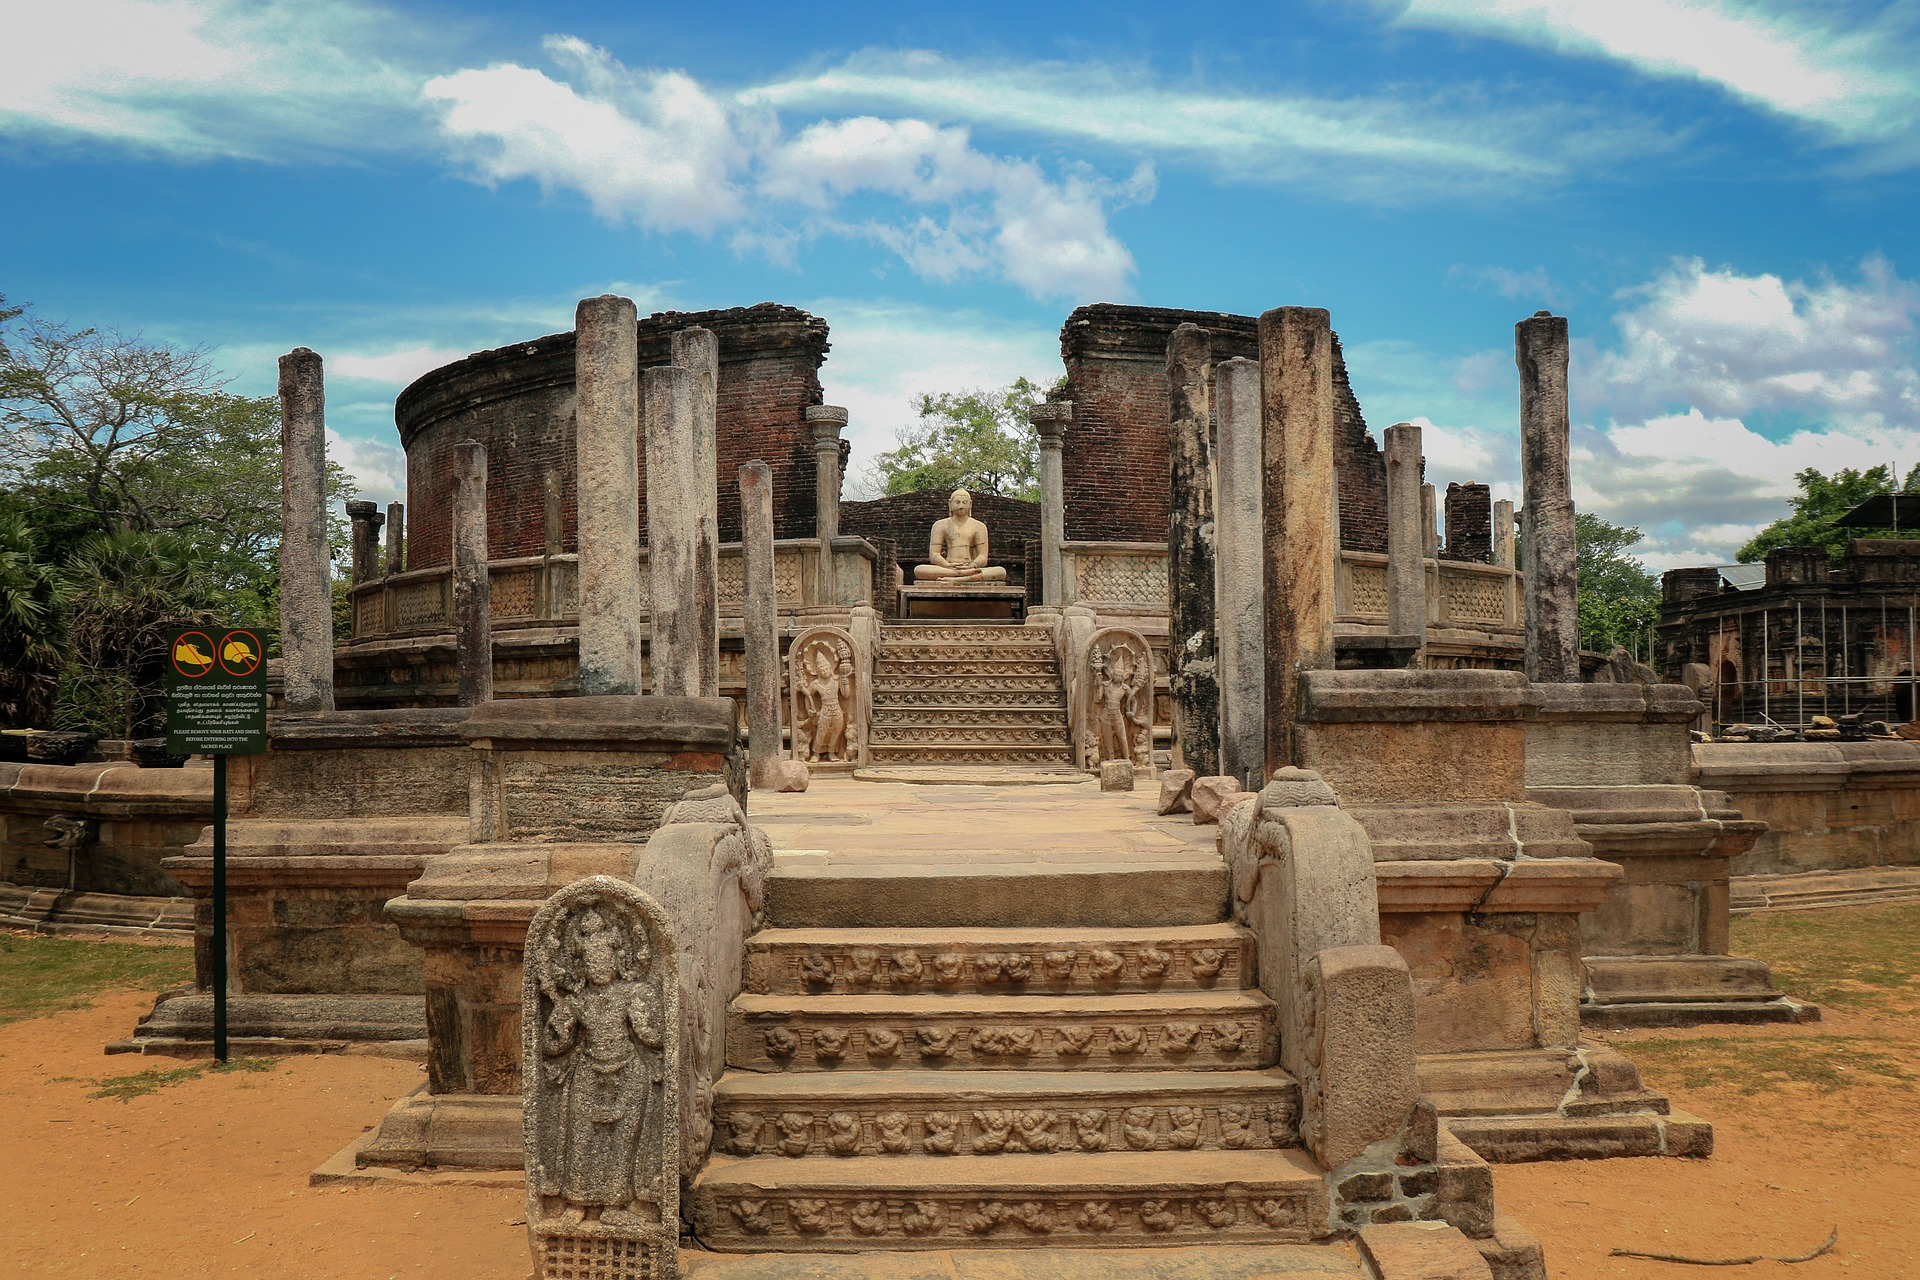 Splendours of Sri Lanka - Polonnaruwa, Sri Lanka